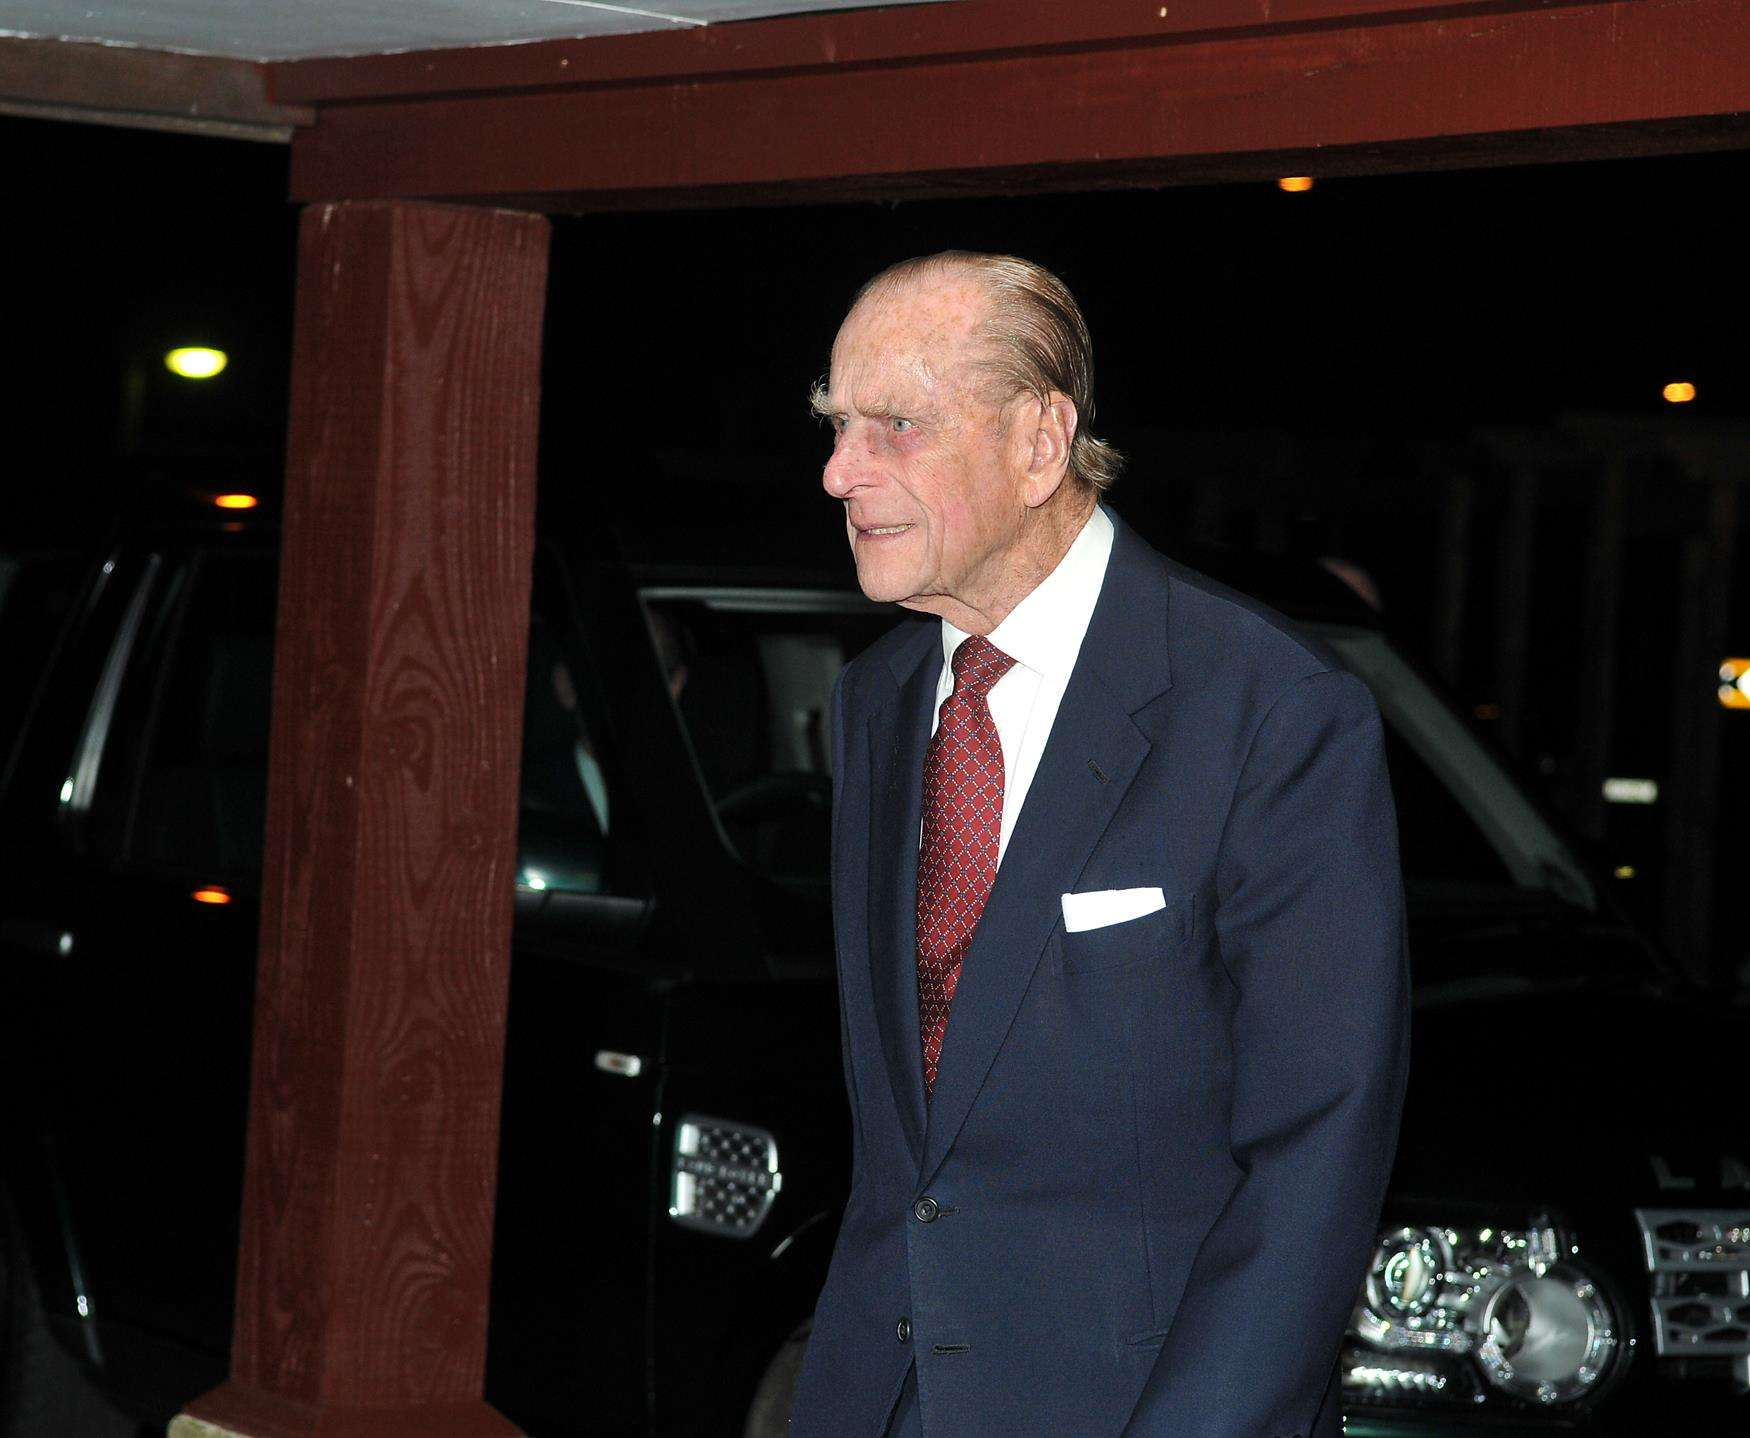 UK's Prince Philip 'voluntarily surrenders' driving licence after crash